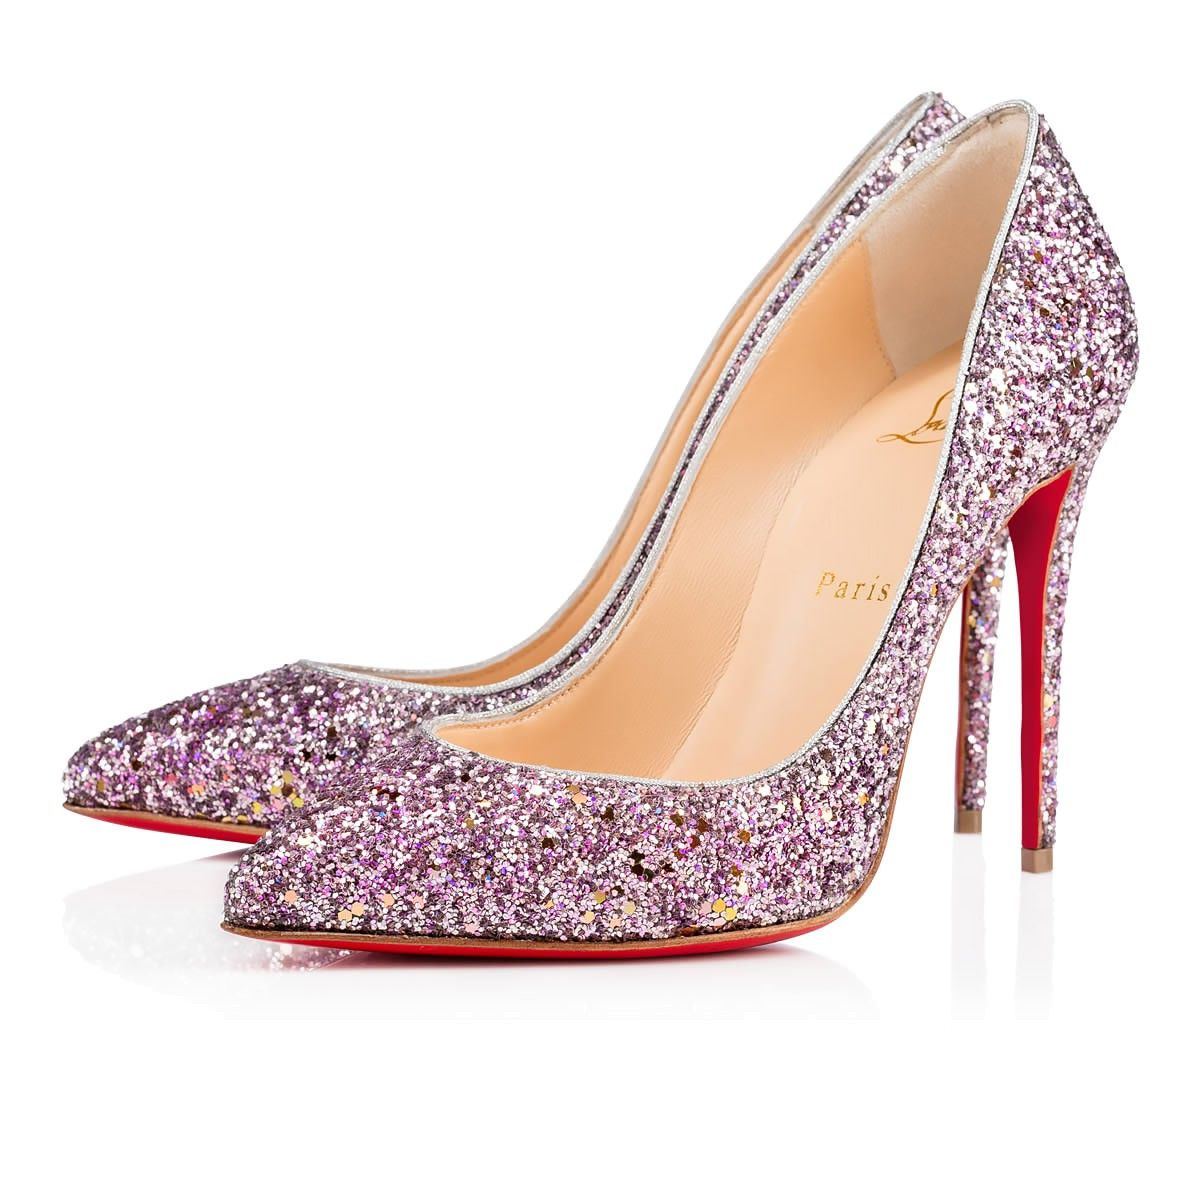 73b75e8d677d Christian Louboutin Australia Official Online Boutique - Pigalle Follies 100  Ronsard Silver Glitter available online